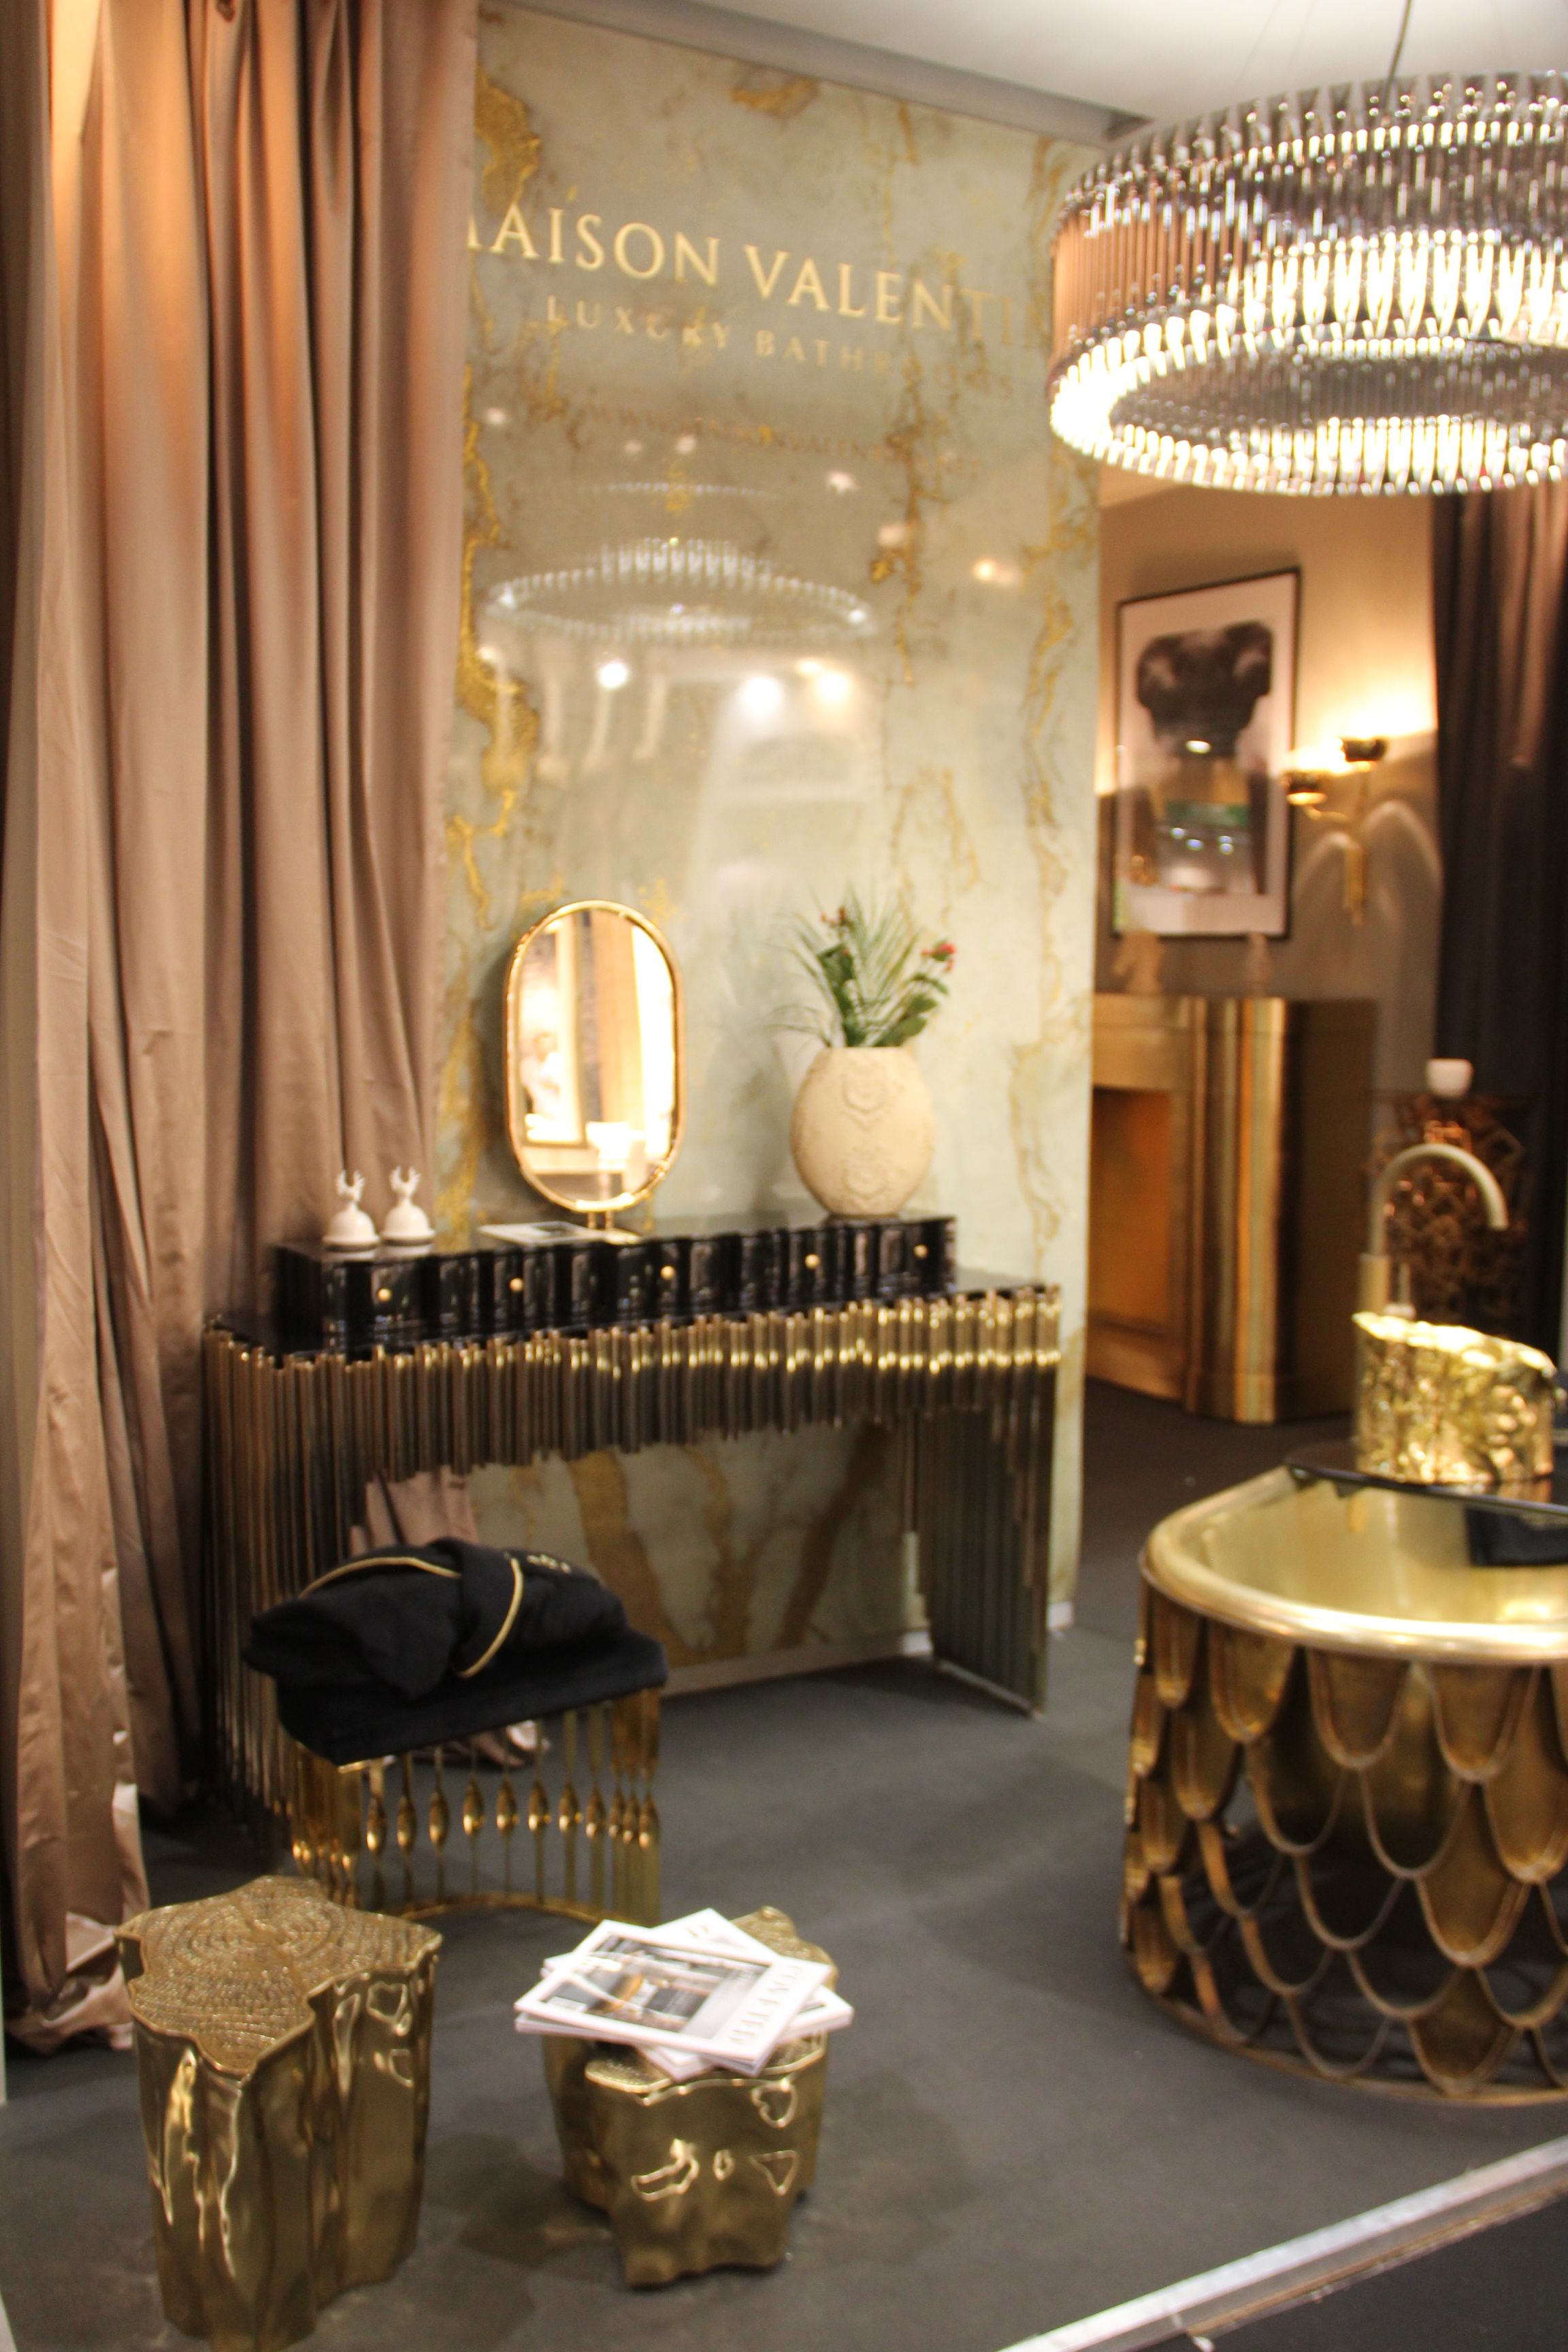 Wohndesign interieur badezimmer pin by shaukat khan on grey and gold  pinterest  bathroom